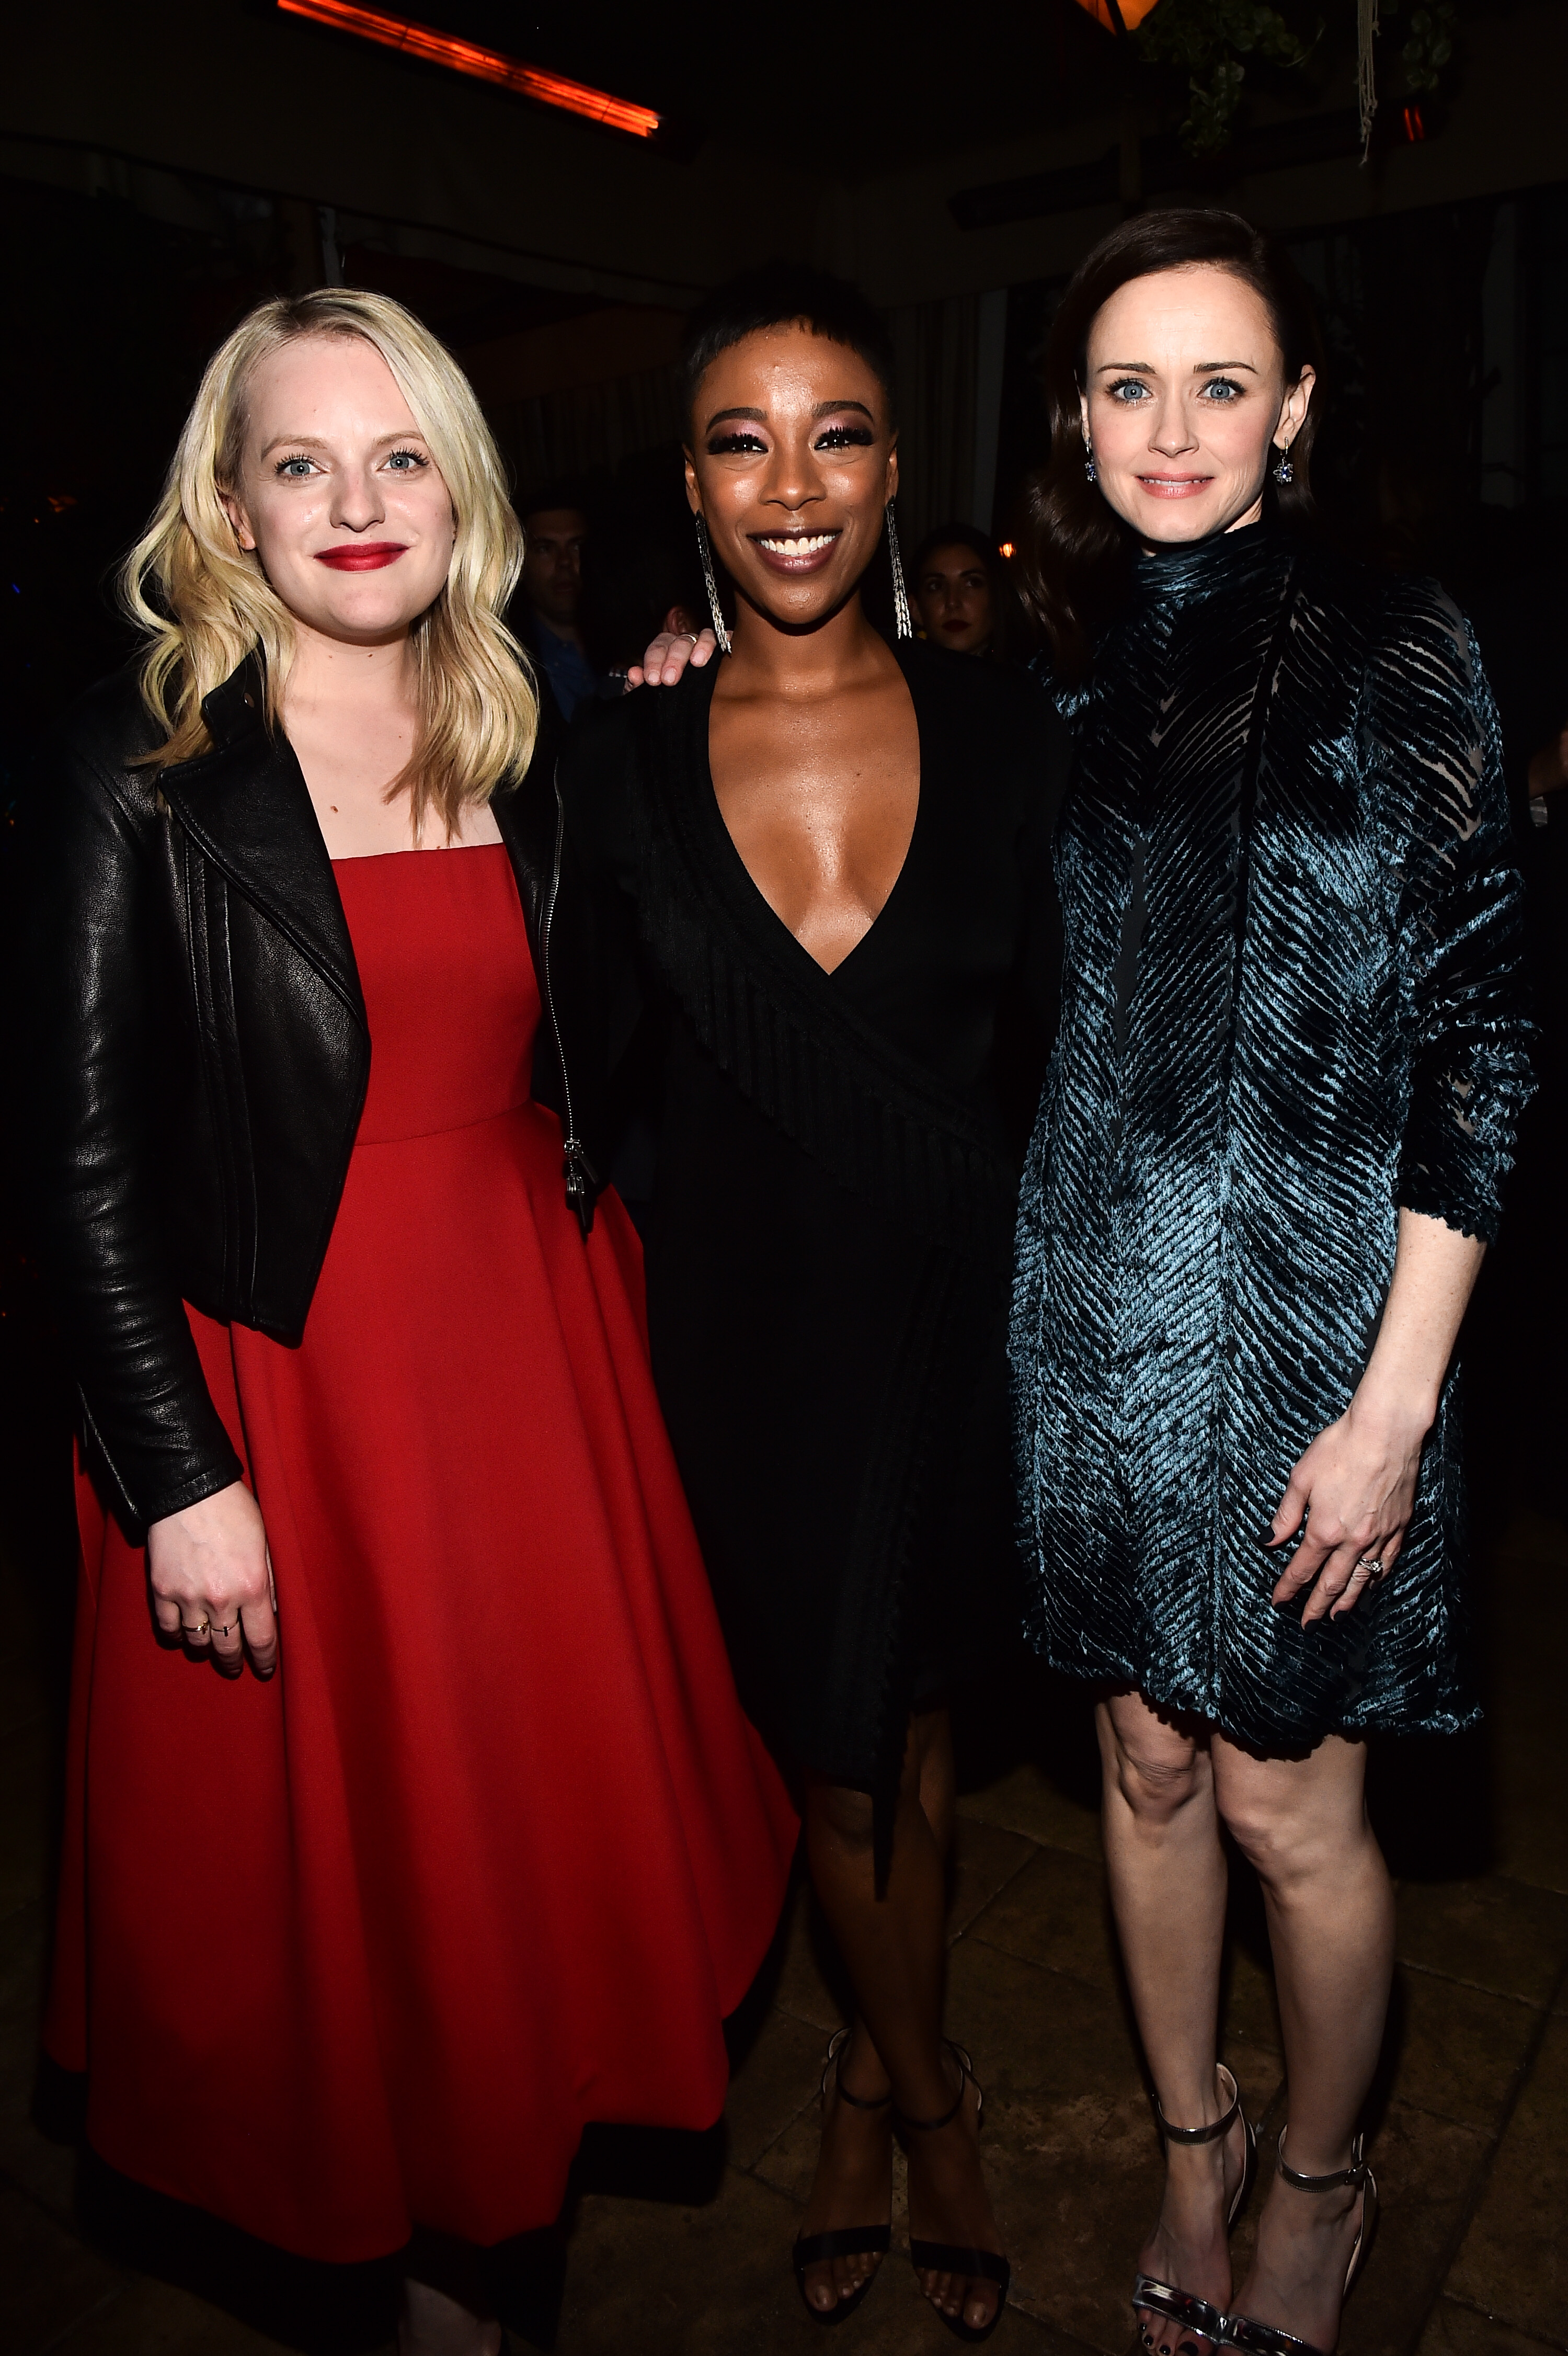 Elisabeth Moss, Samira Wiley and Alexis Bledel'The Handmaid's Tale' TV show premiere, After Party, Los Angeles, USA - 19 Apr 2018